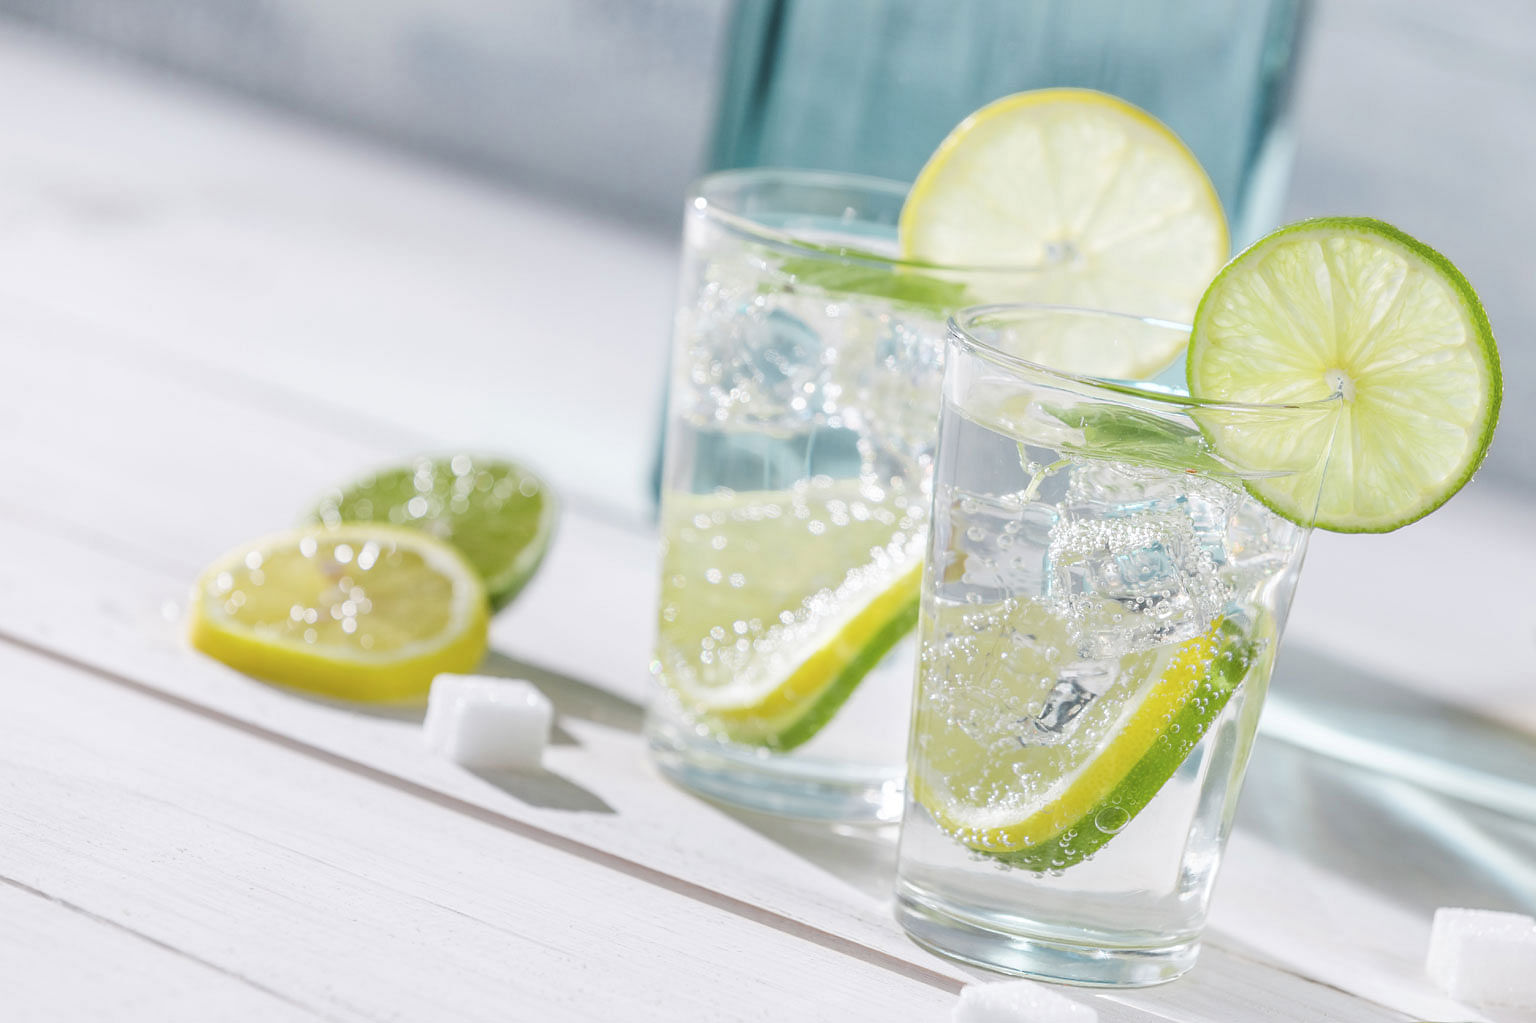 Drinking Cold Water After Meal Myth